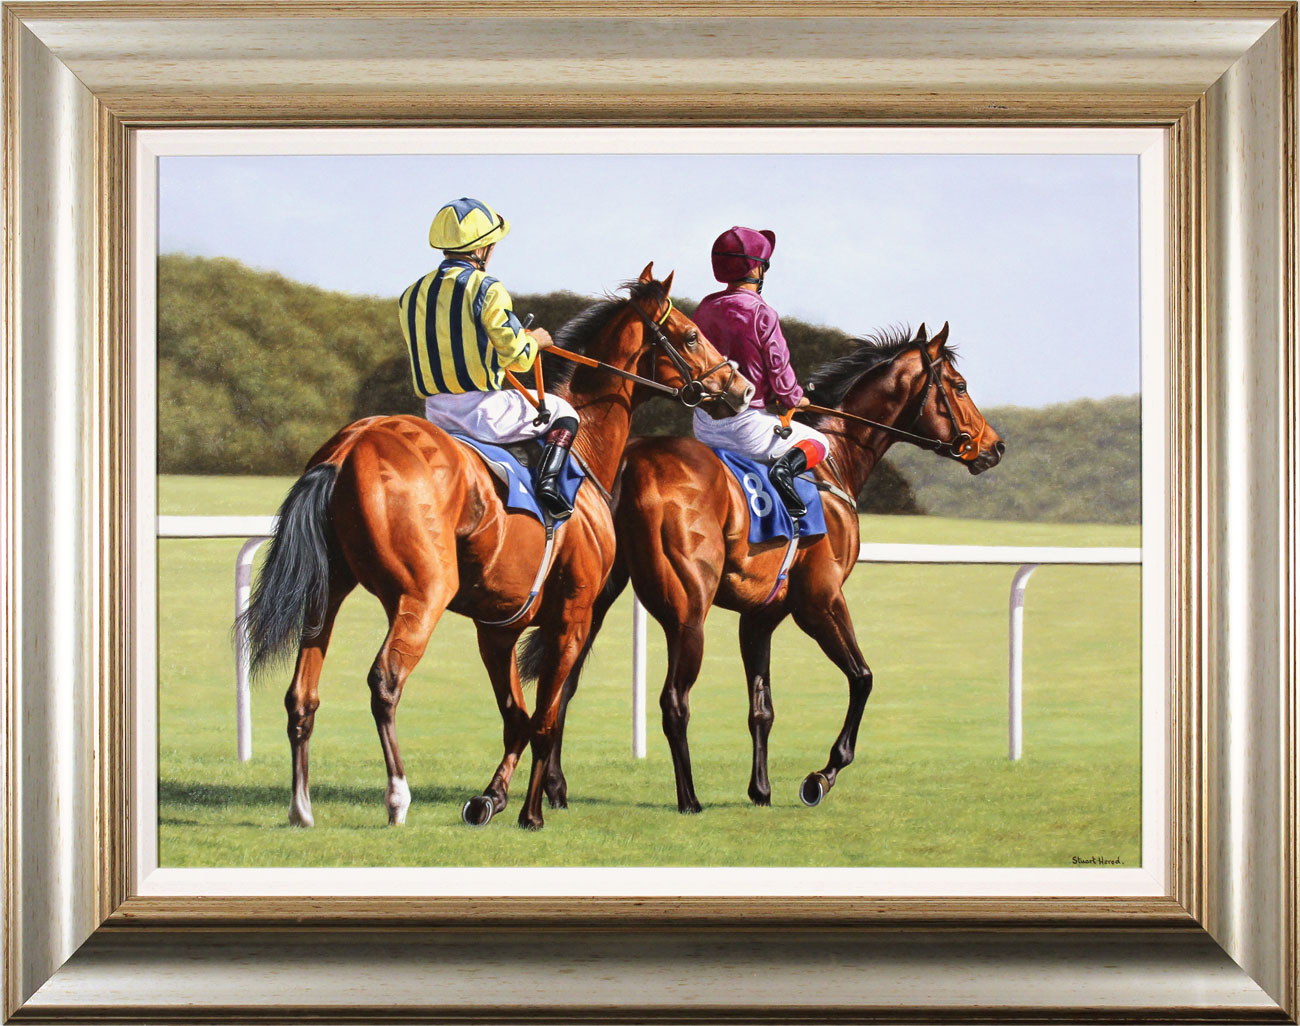 Stuart Herod, Original oil painting on canvas, Off to the Starting Gate Click to enlarge